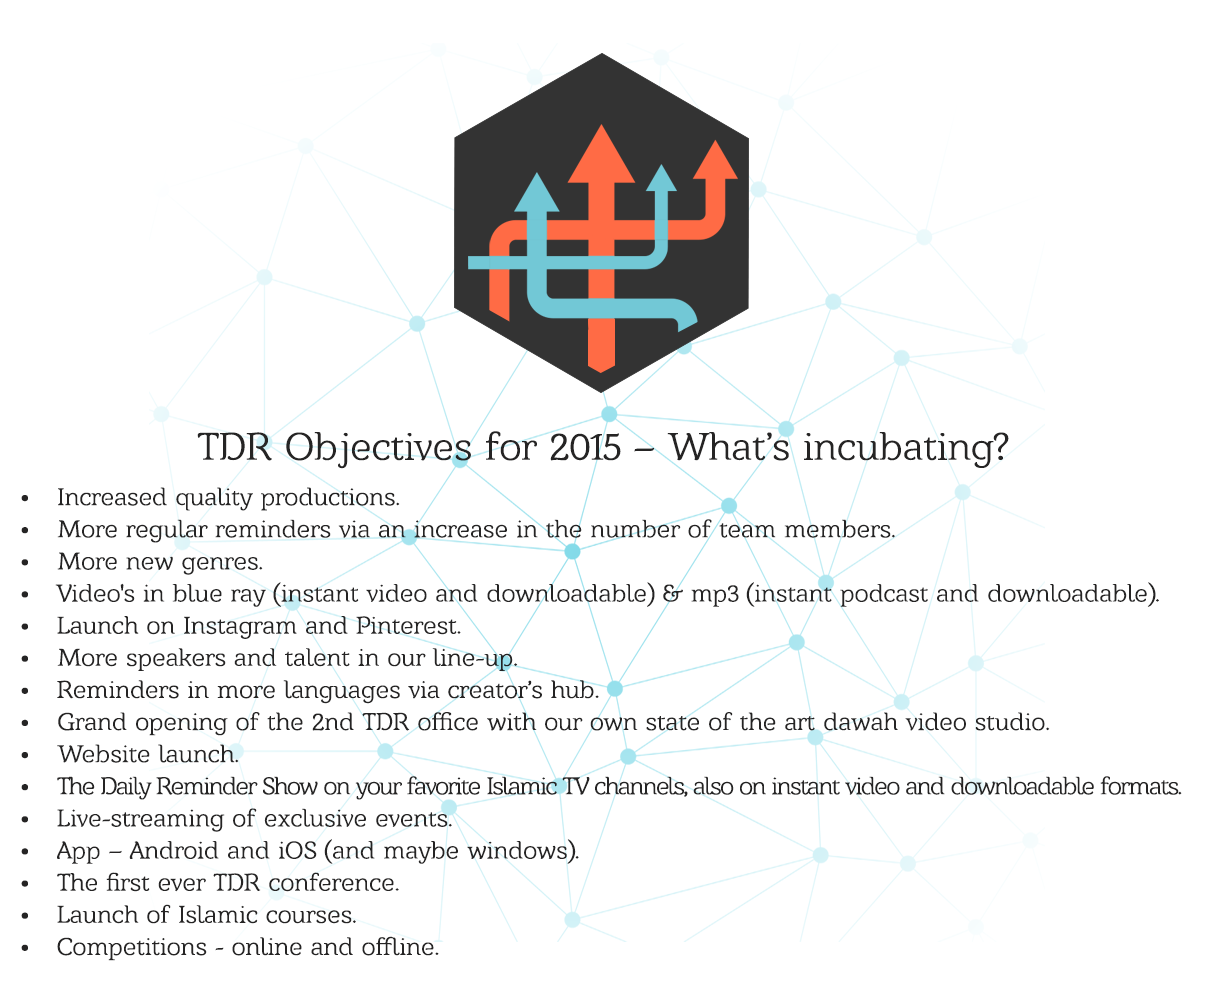 TDR Objectives 2015